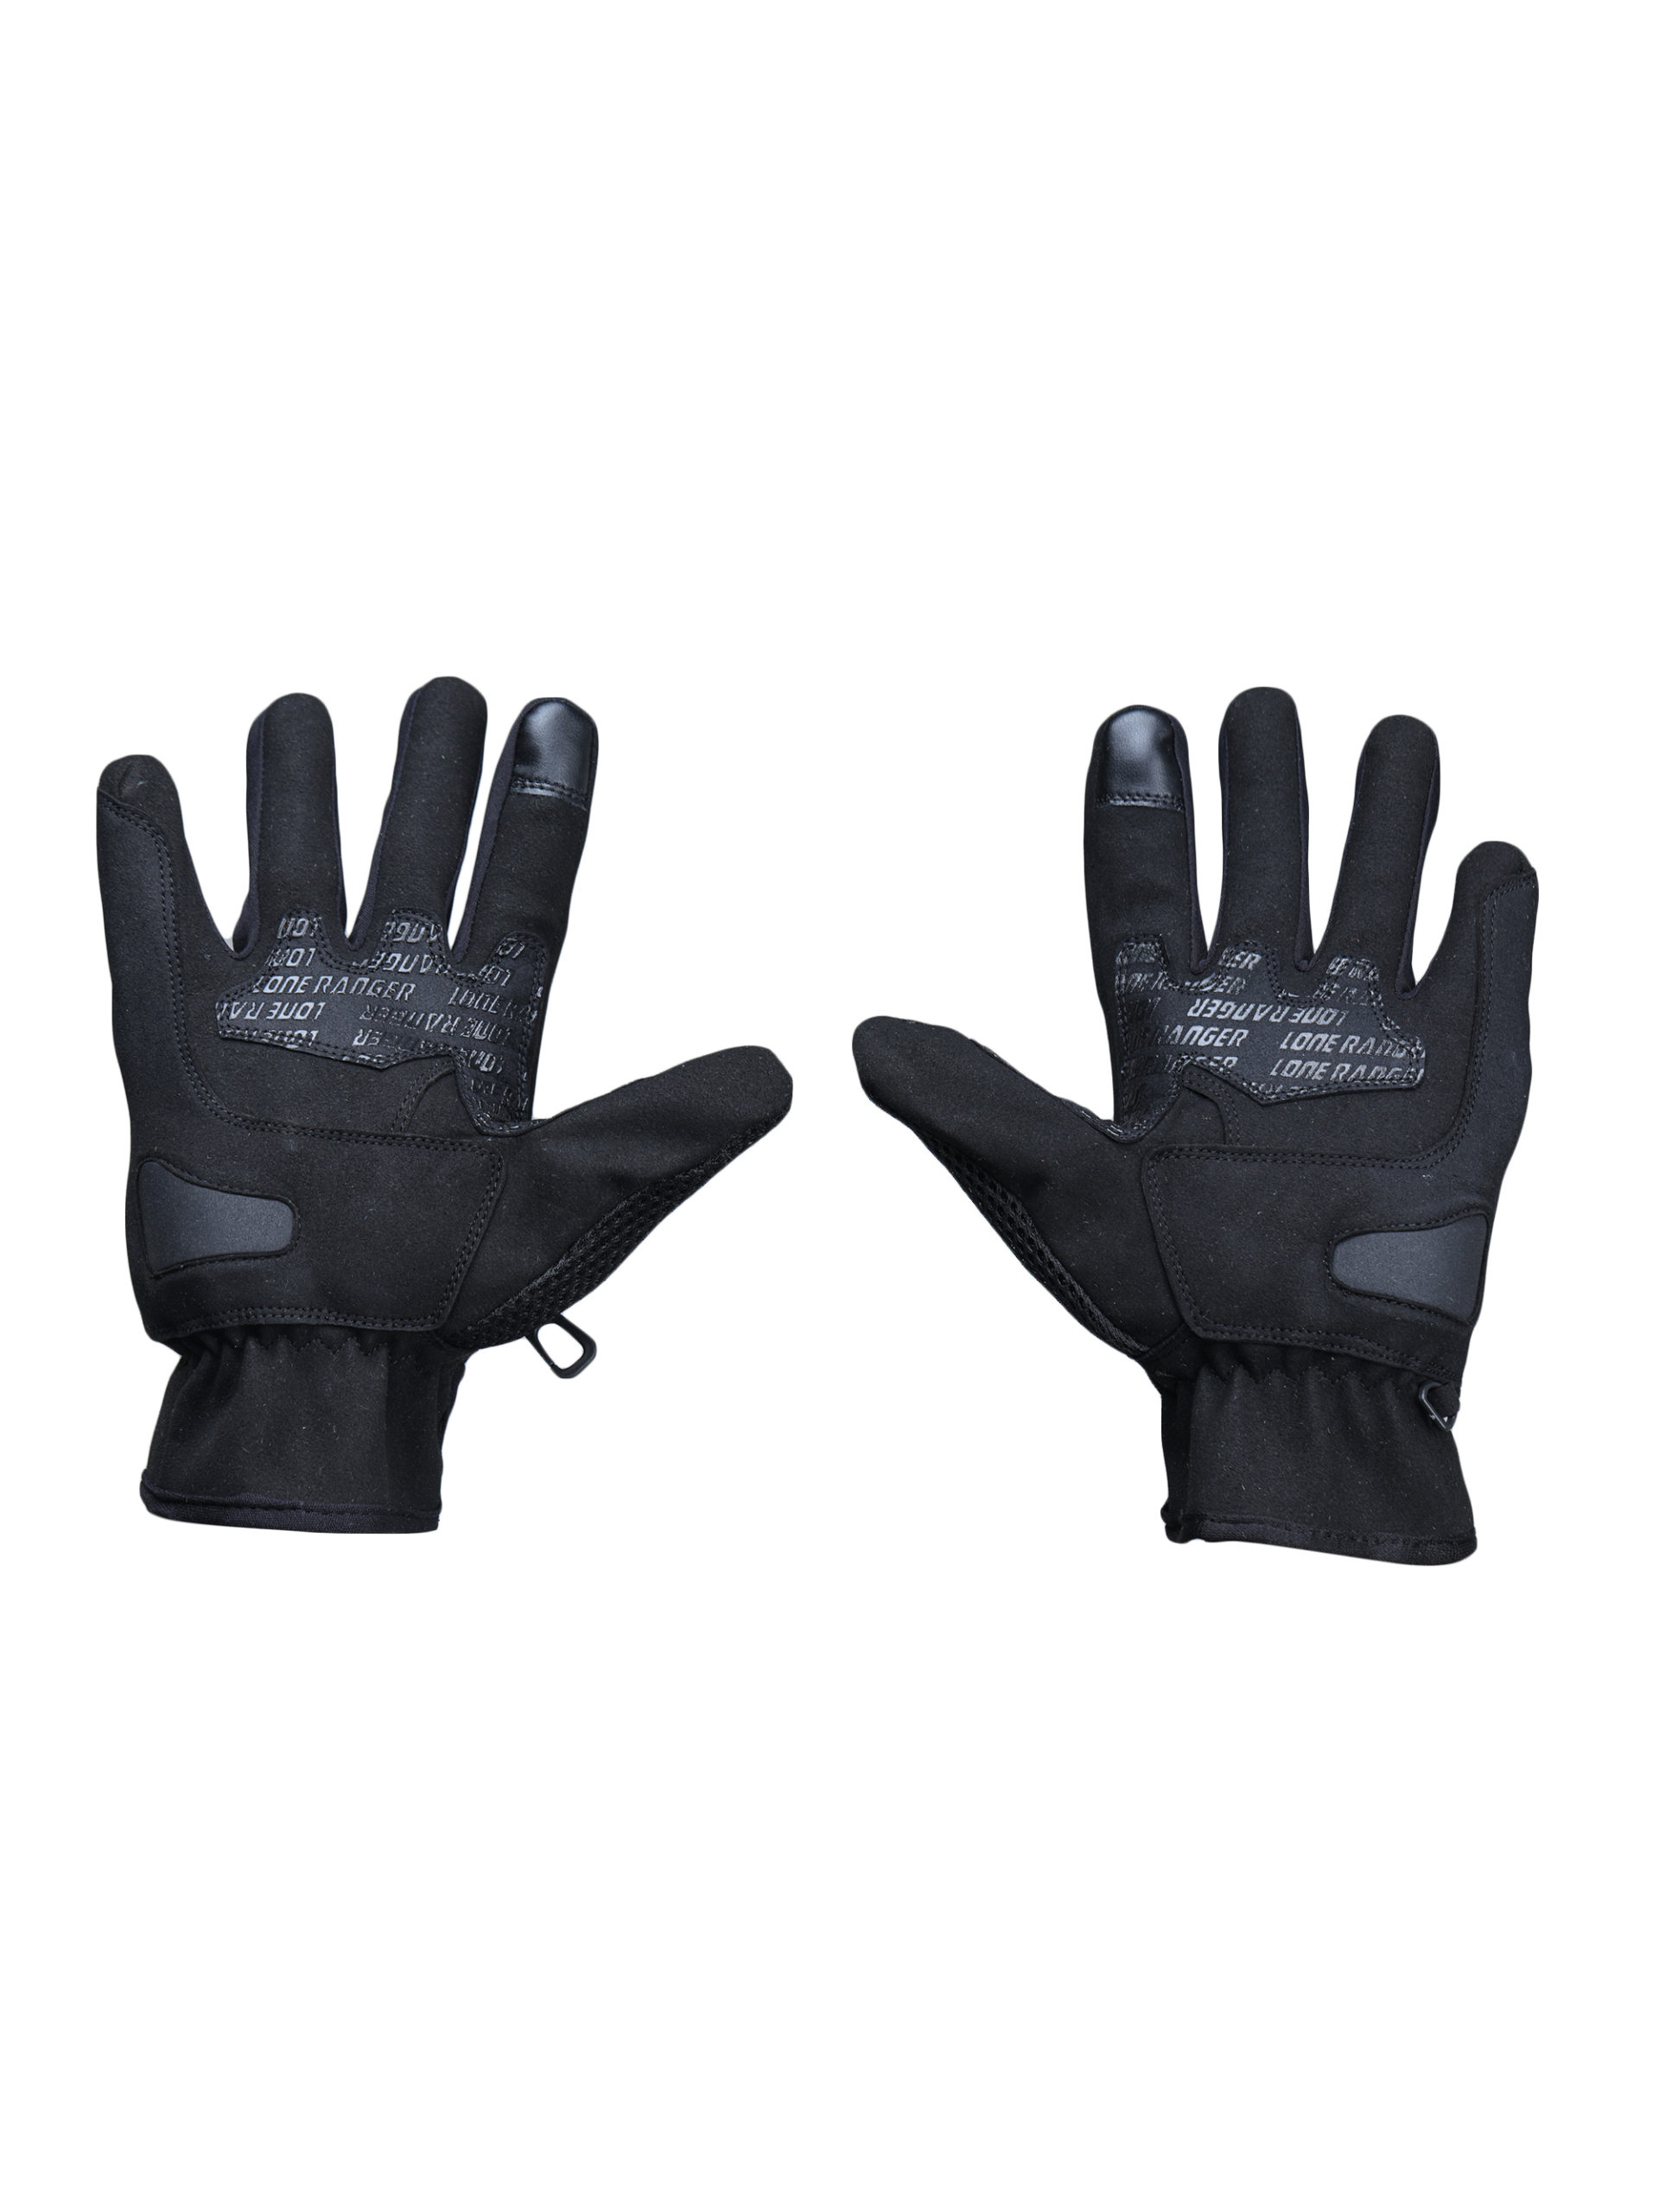 royaldcb257_air-x-gloves-black2